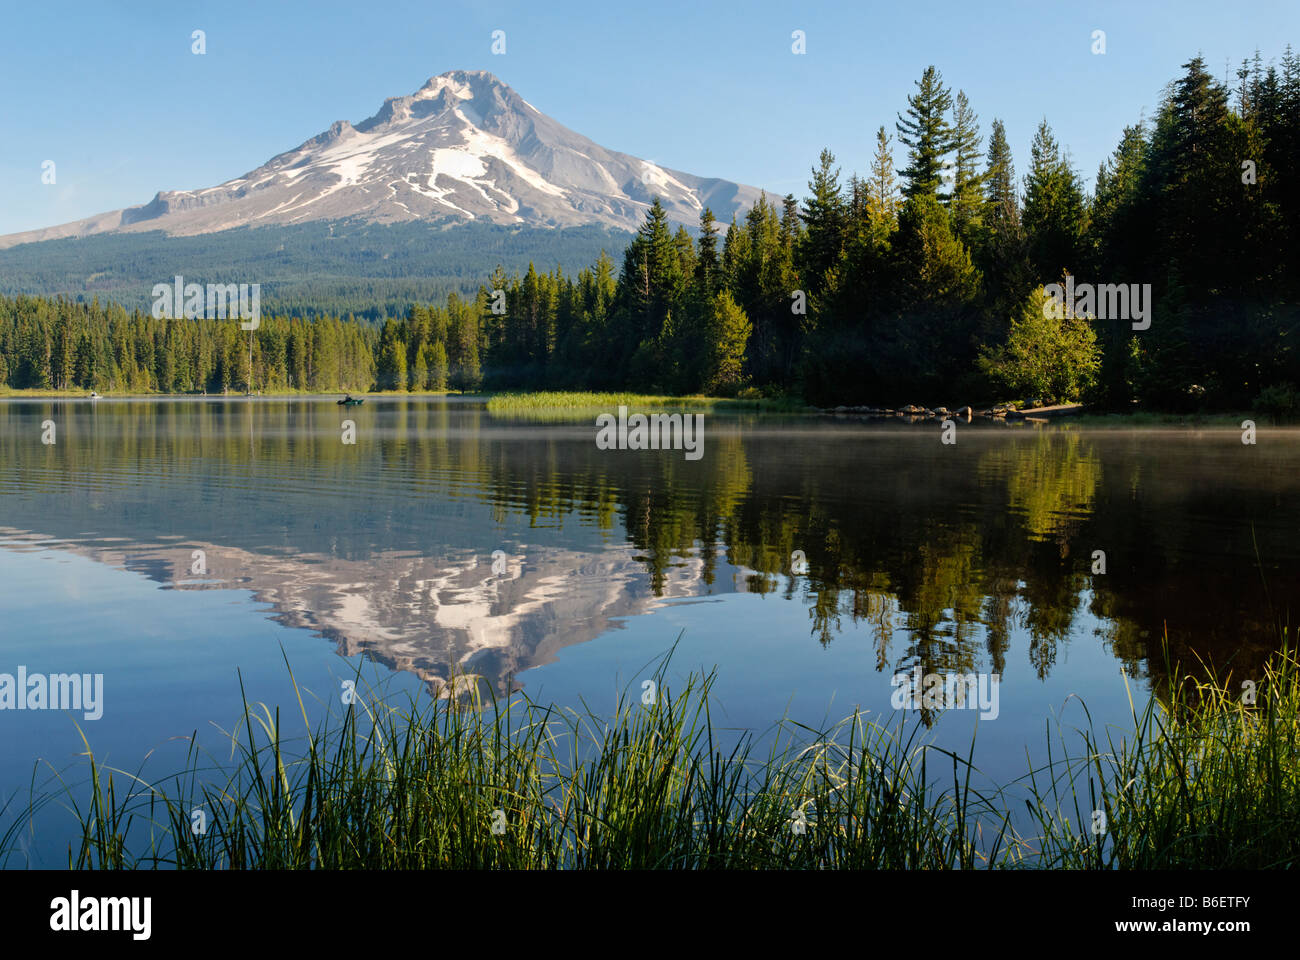 Trillium Lake and Mount Hood volcano, Cascade Range, Oregon, USA Stock Photo